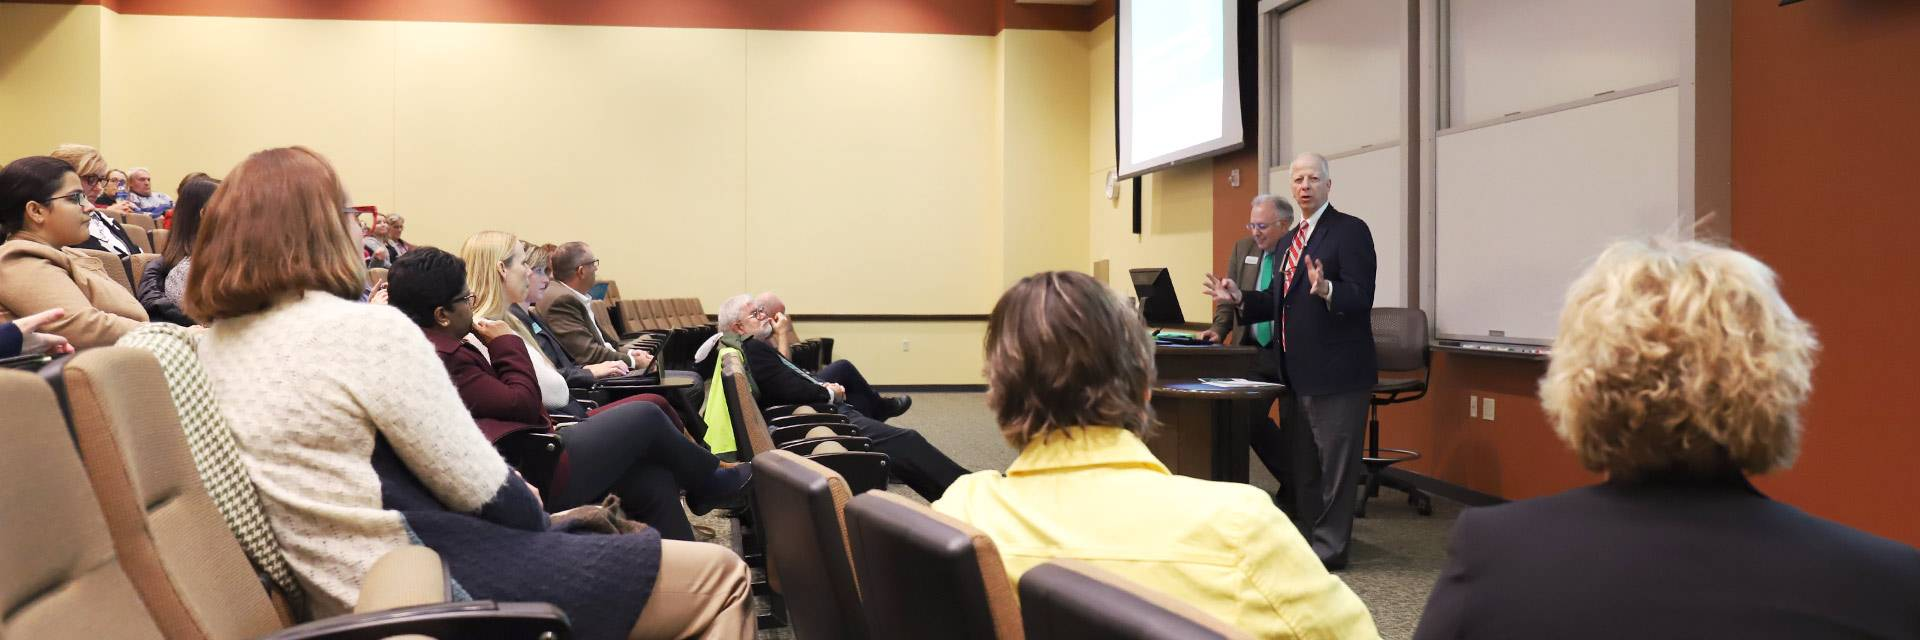 Provost speaking at an open forum